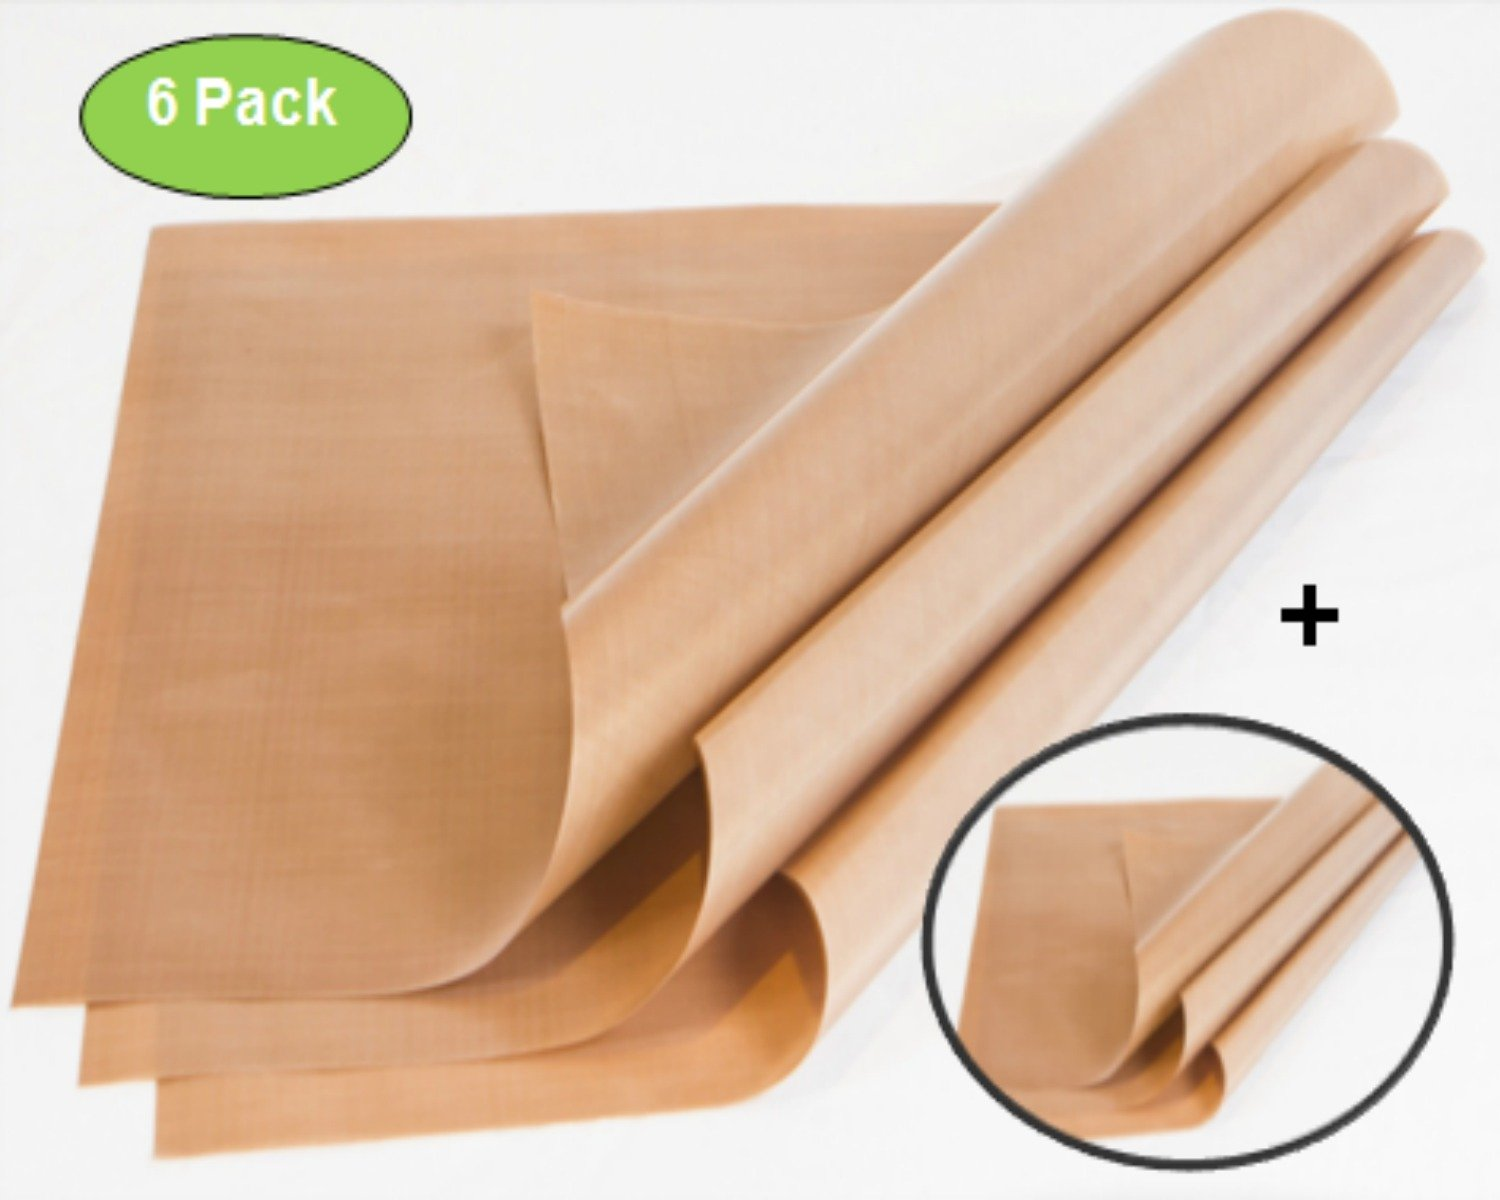 Zuitcase 6-Pack Telfon Sheet for Heat Press – 5MM Thickness is 3X Thicker than Standard PTFE Craft Mats, Brown 16 x 20, Heavy Duty Non-Stick Liner, Great Polymer Clay Sheet, Rubber Stamping Supplies by Zuitcase